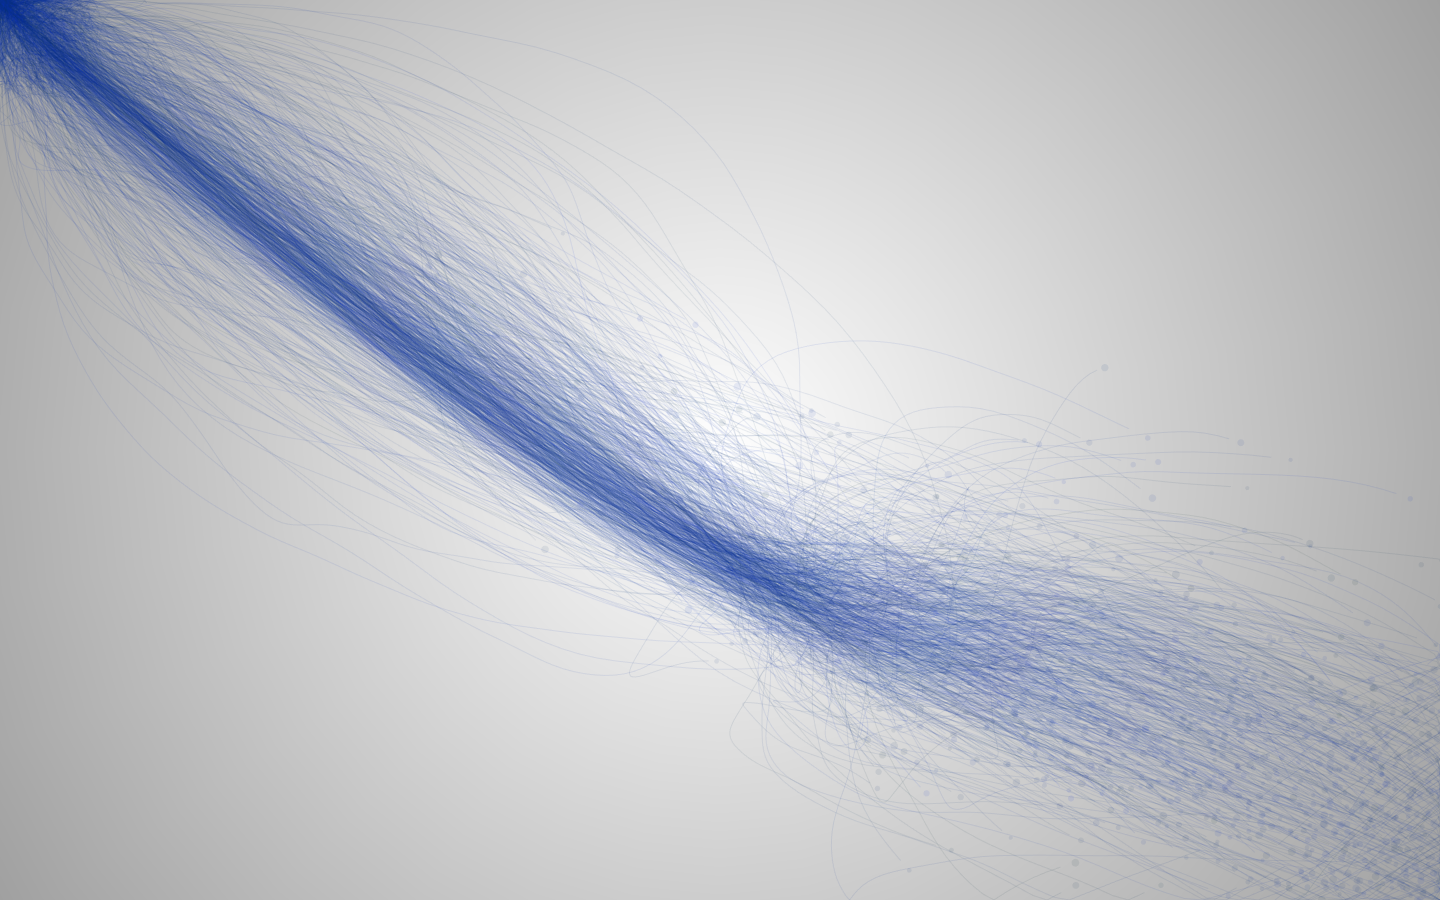 Sketching With Particles